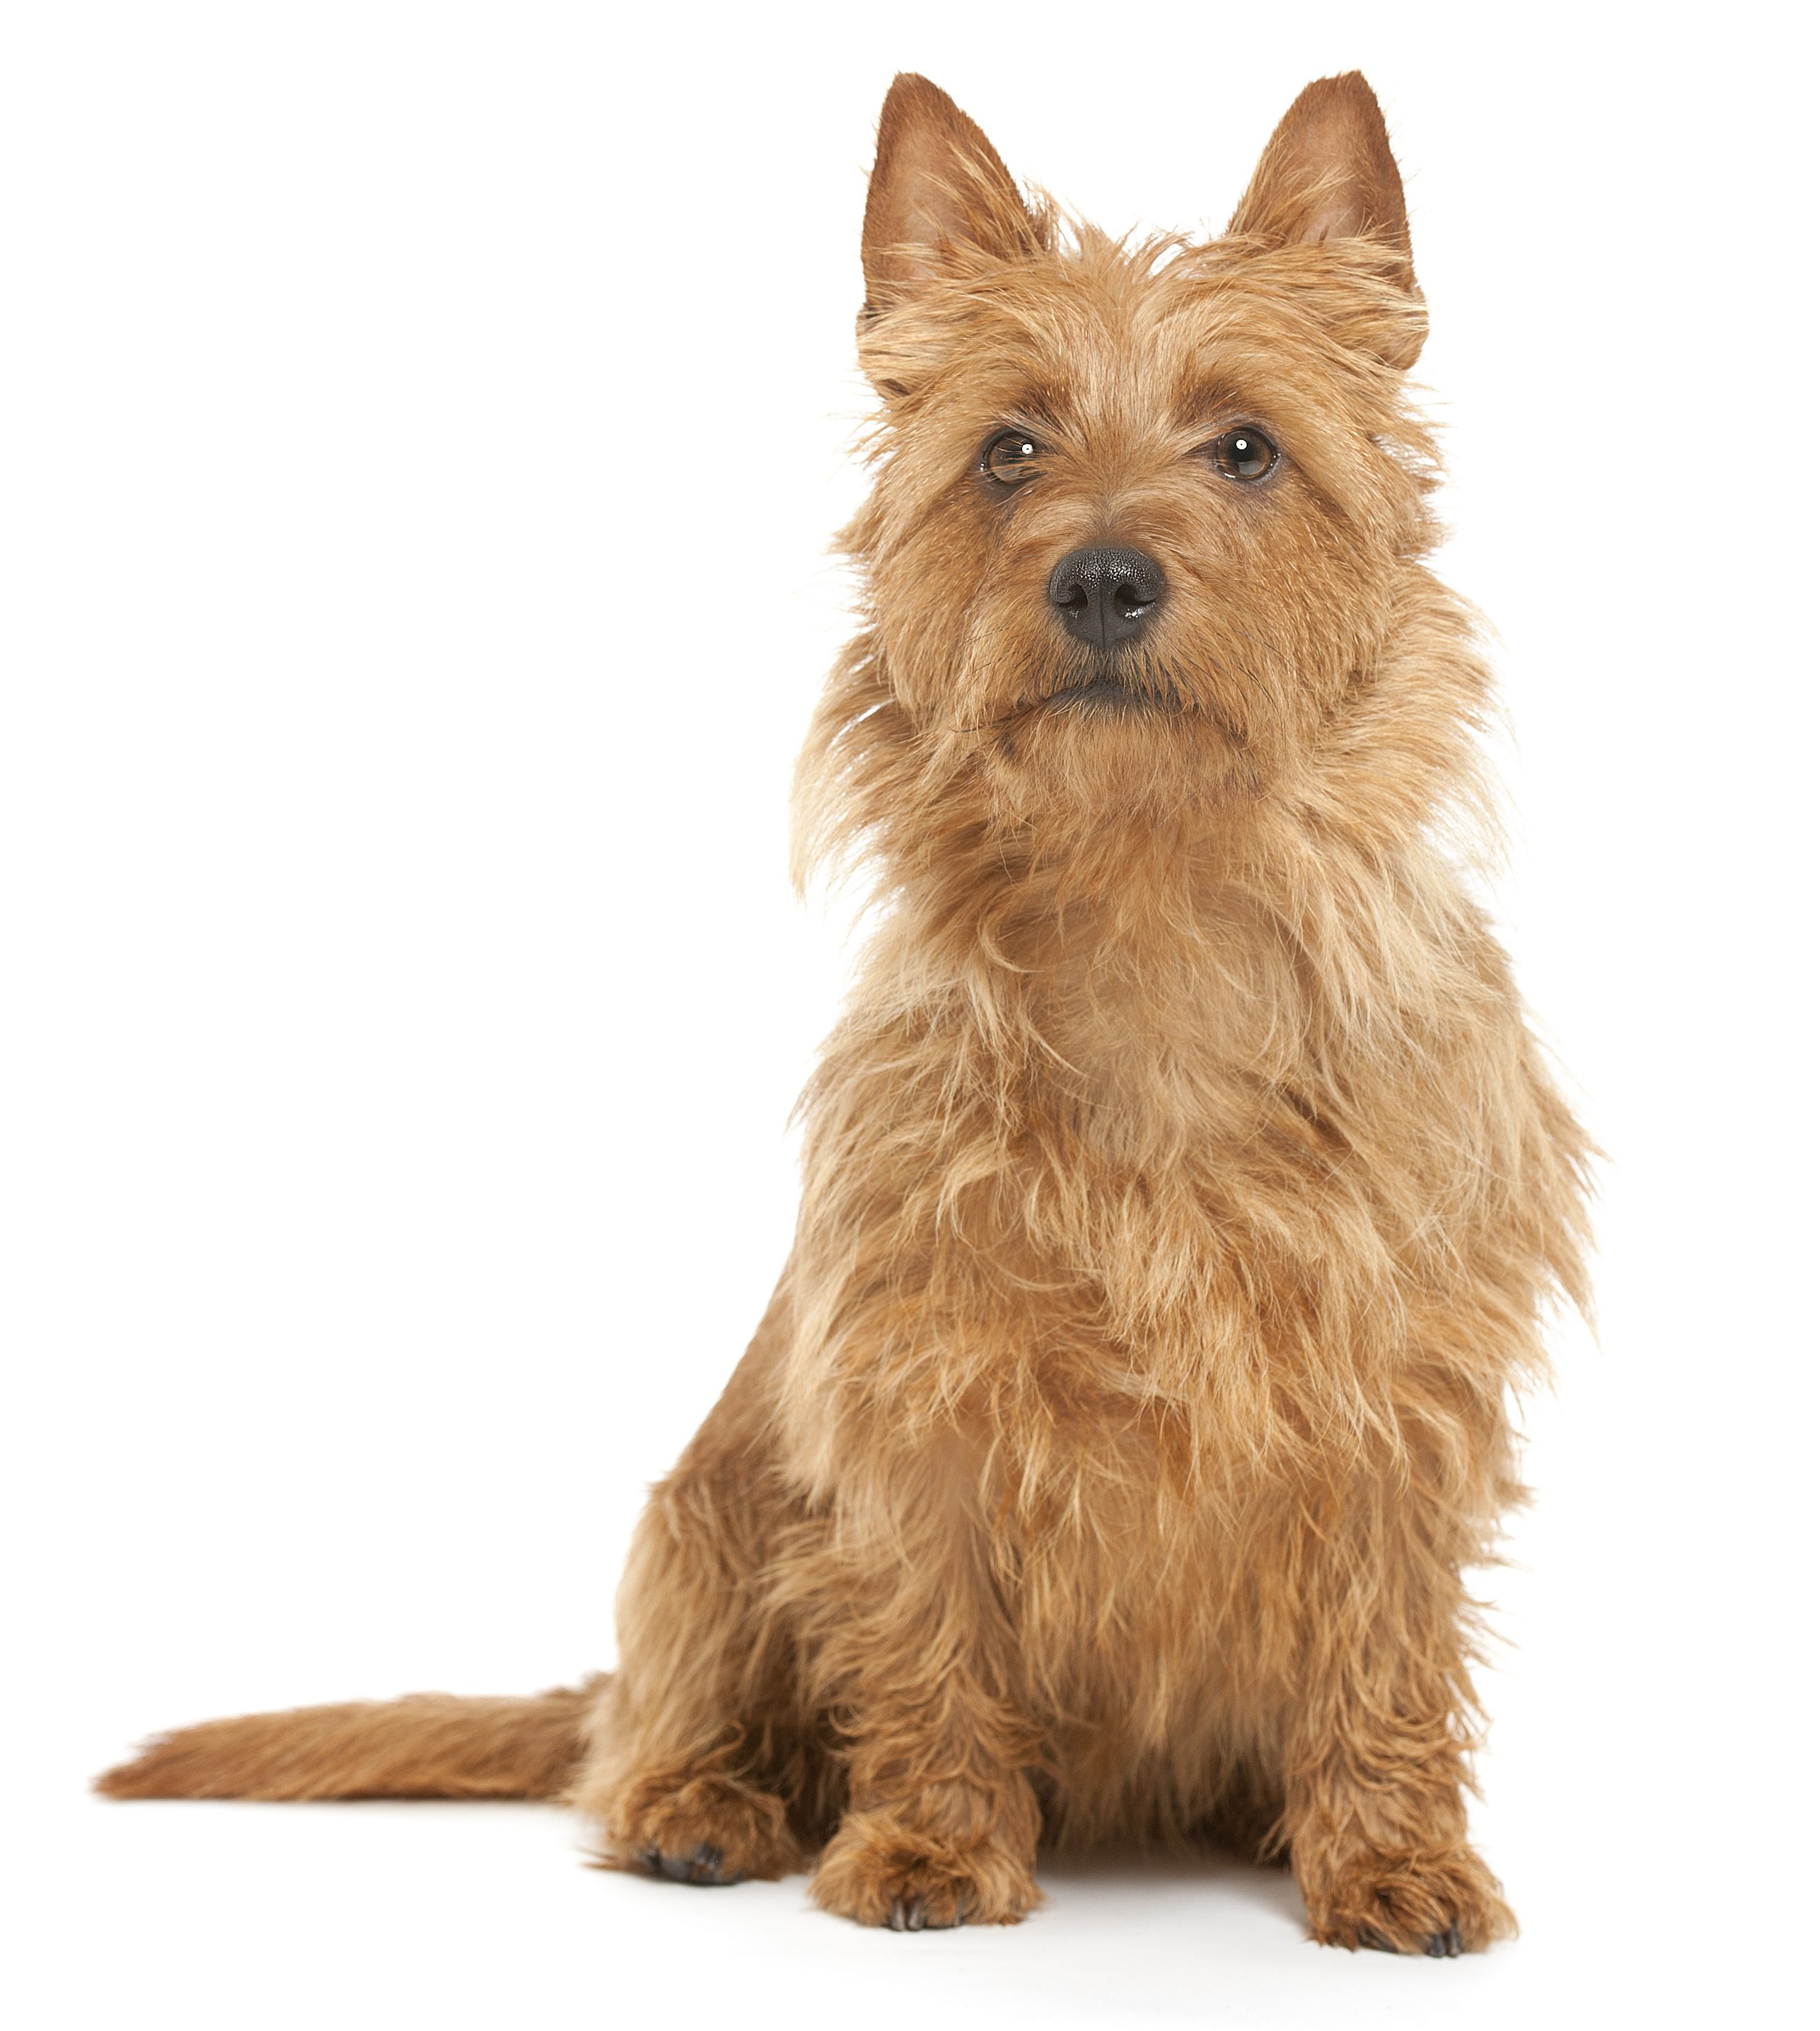 Australian Terrier sitting in front of a white background